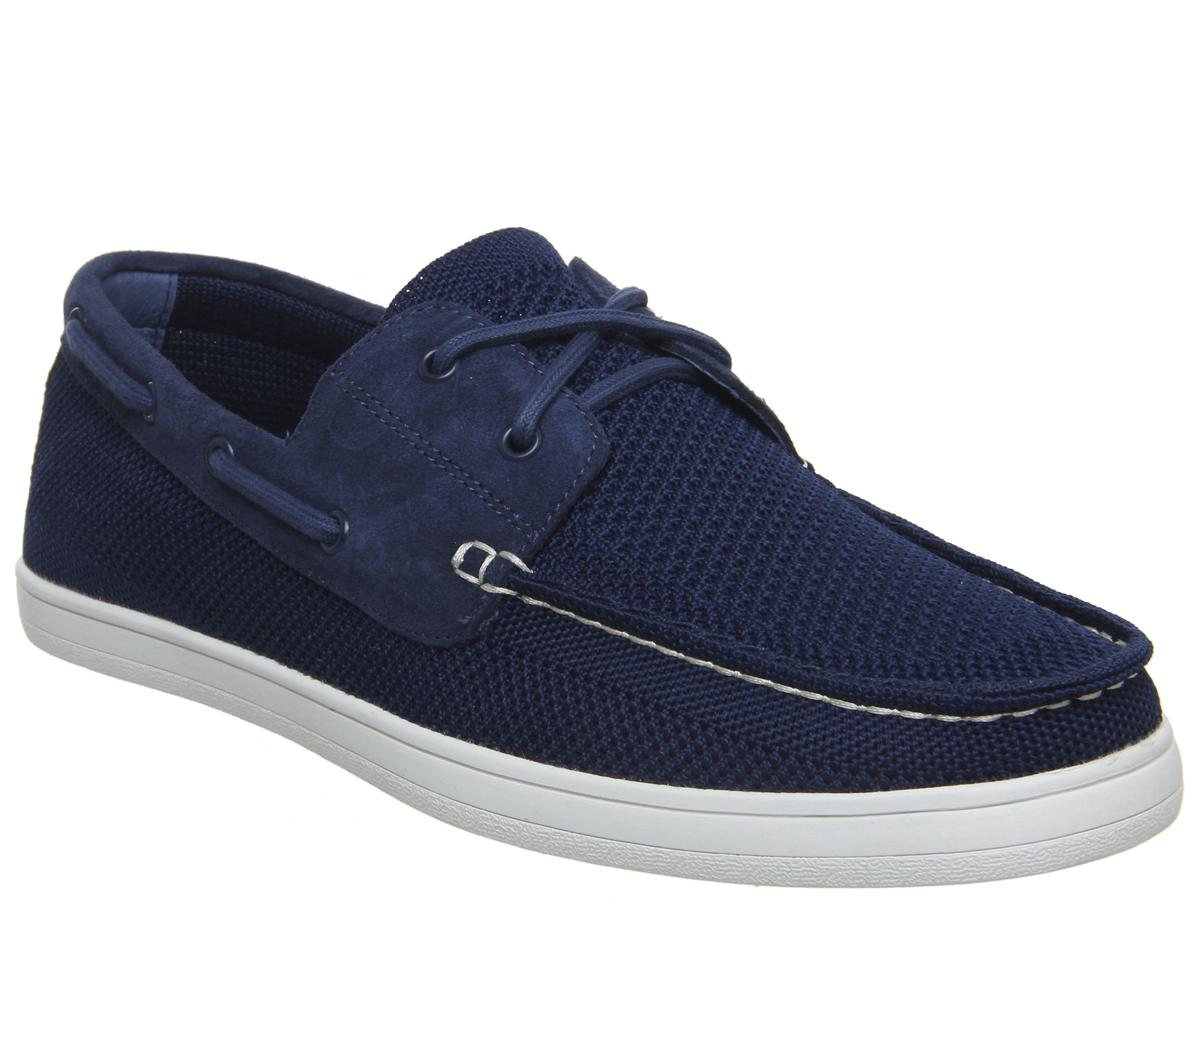 Mens Office Life Boat Shoe Navy Knit Suede